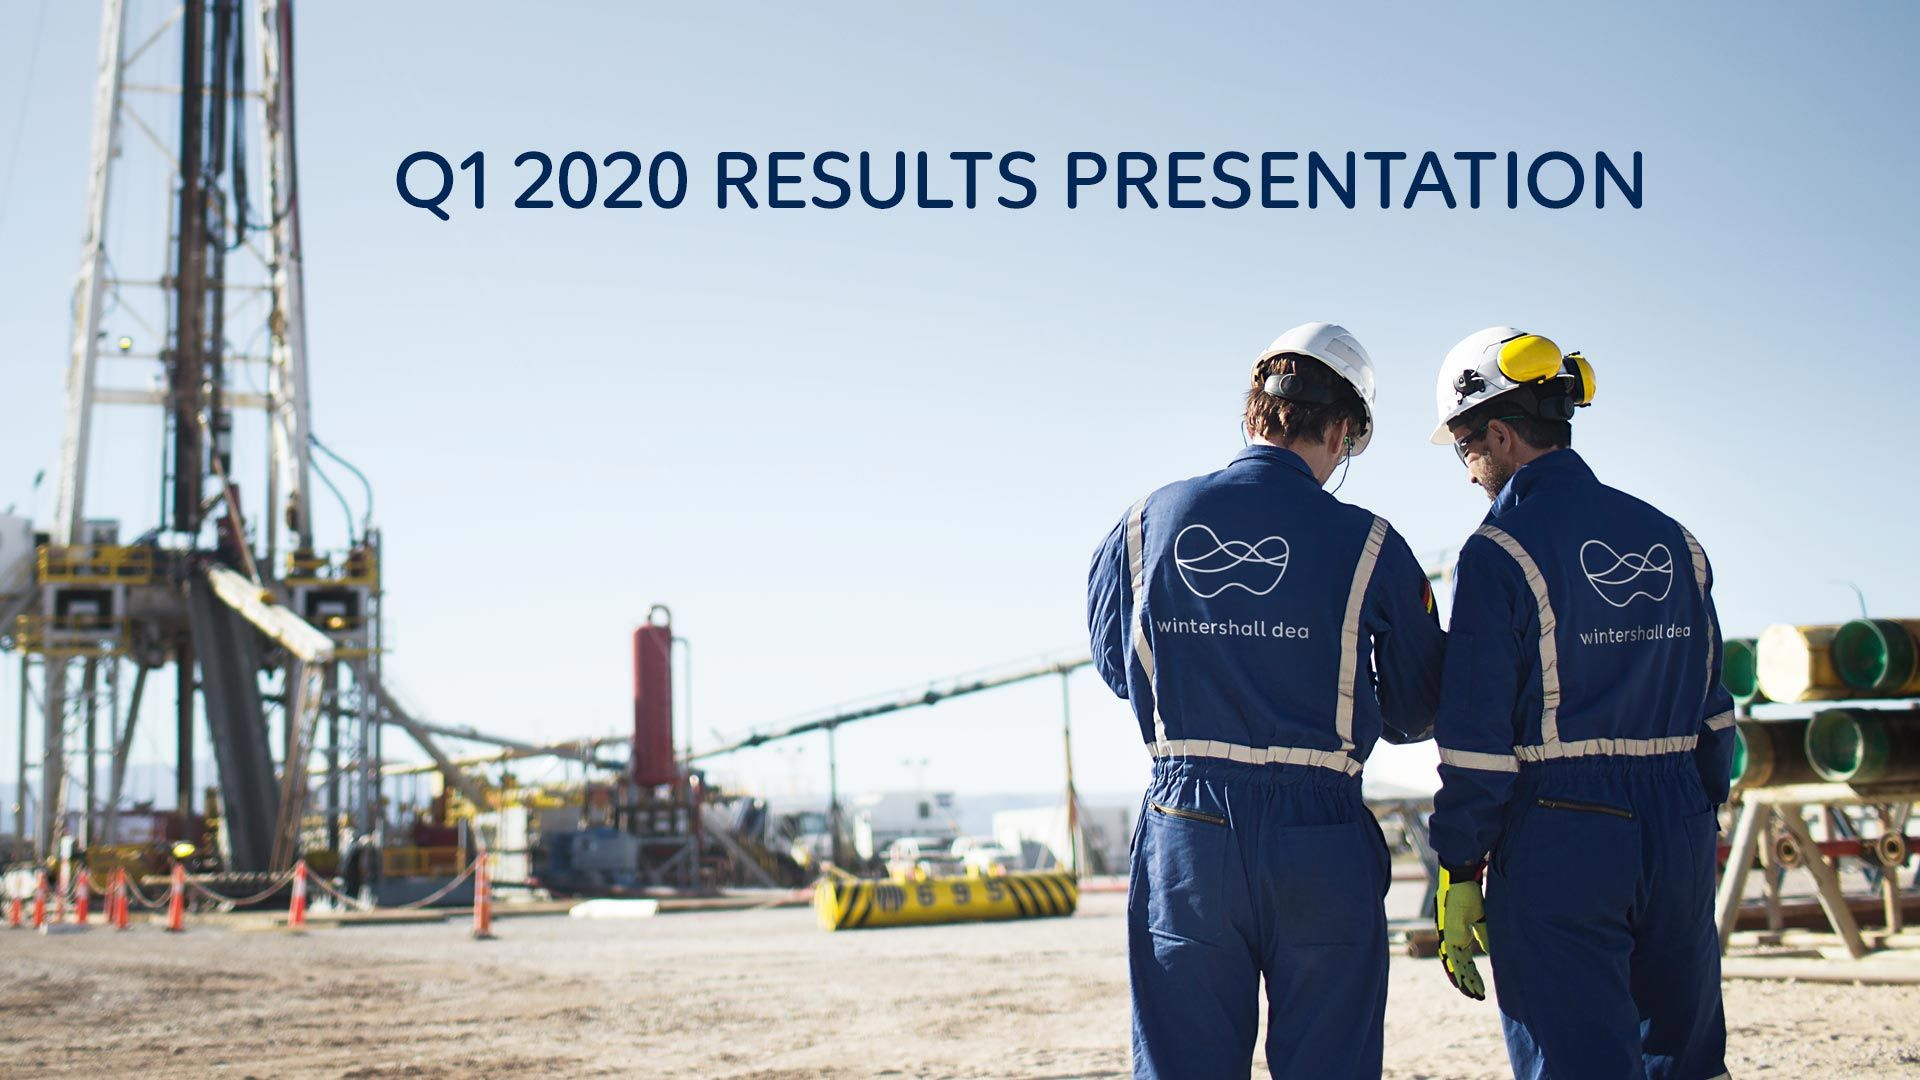 Wintershall Dea presentation results Q1